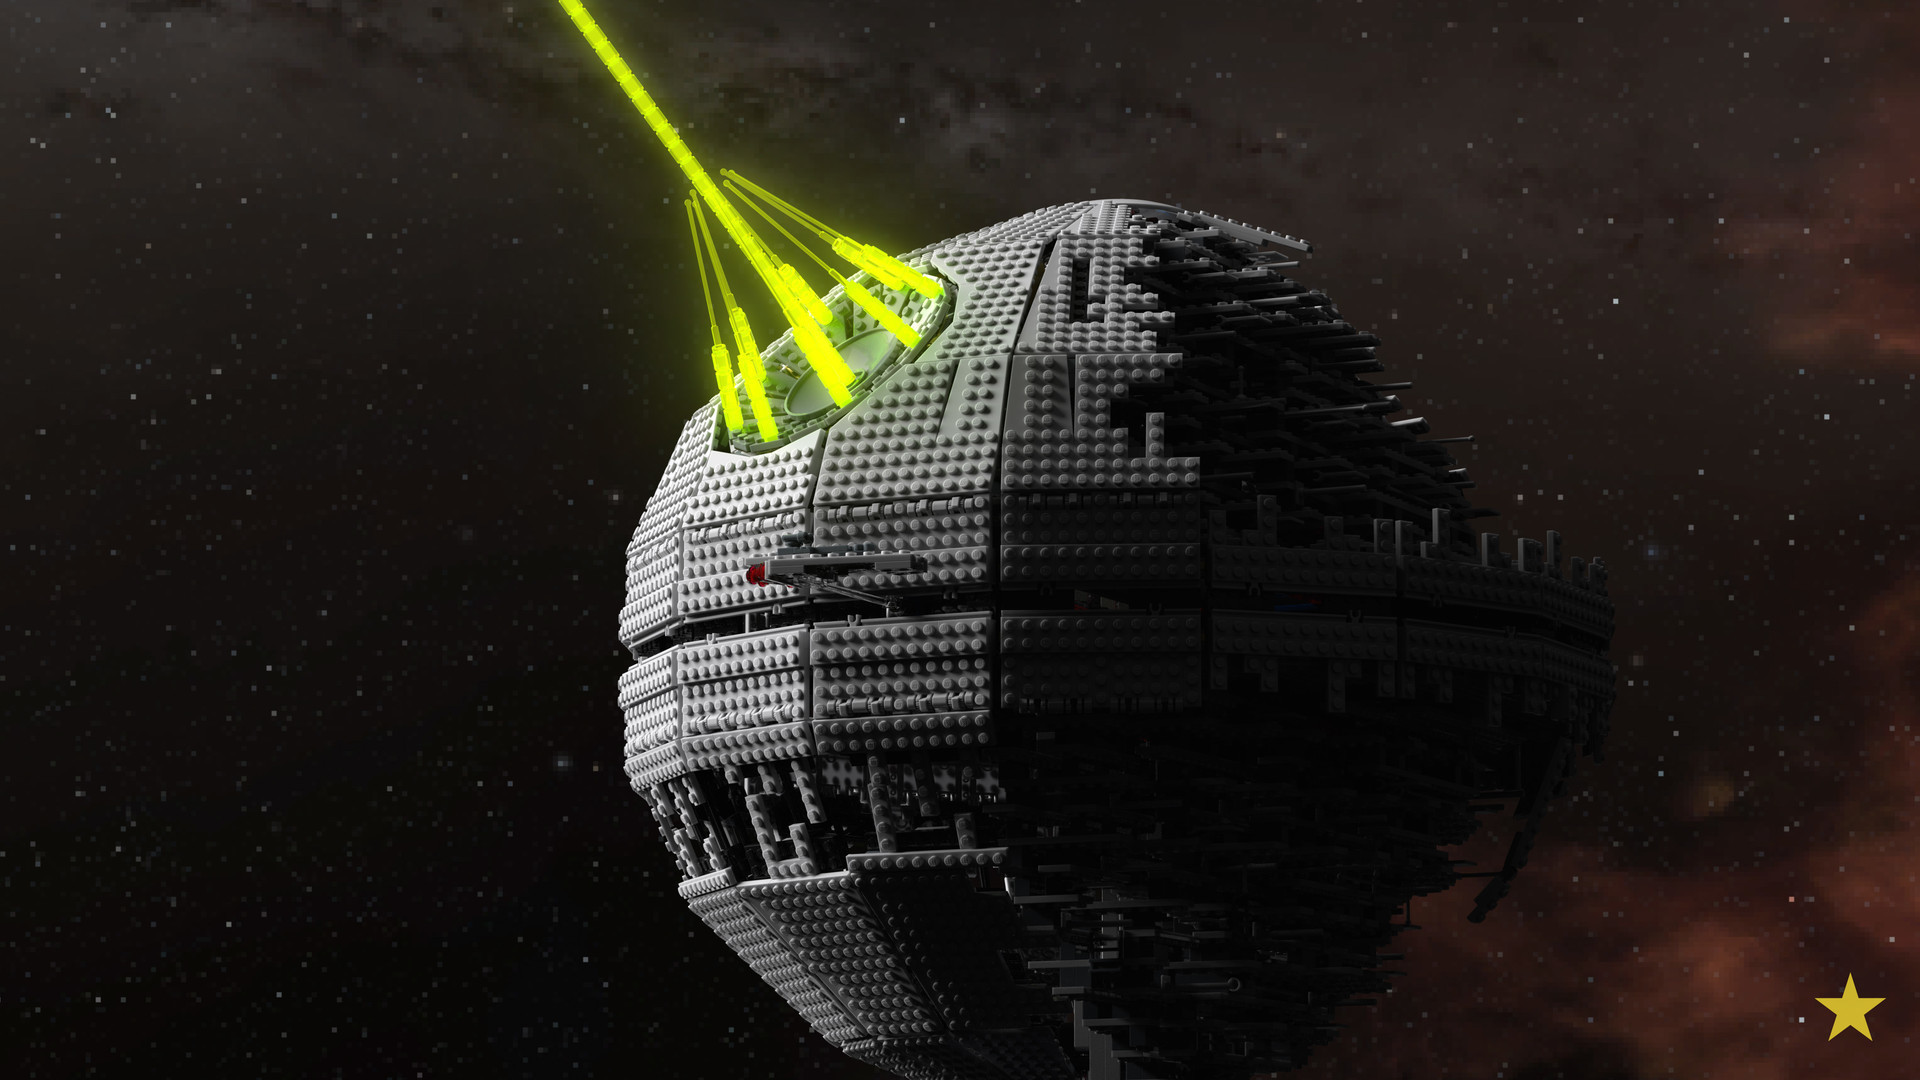 death star wallpaper 76 images